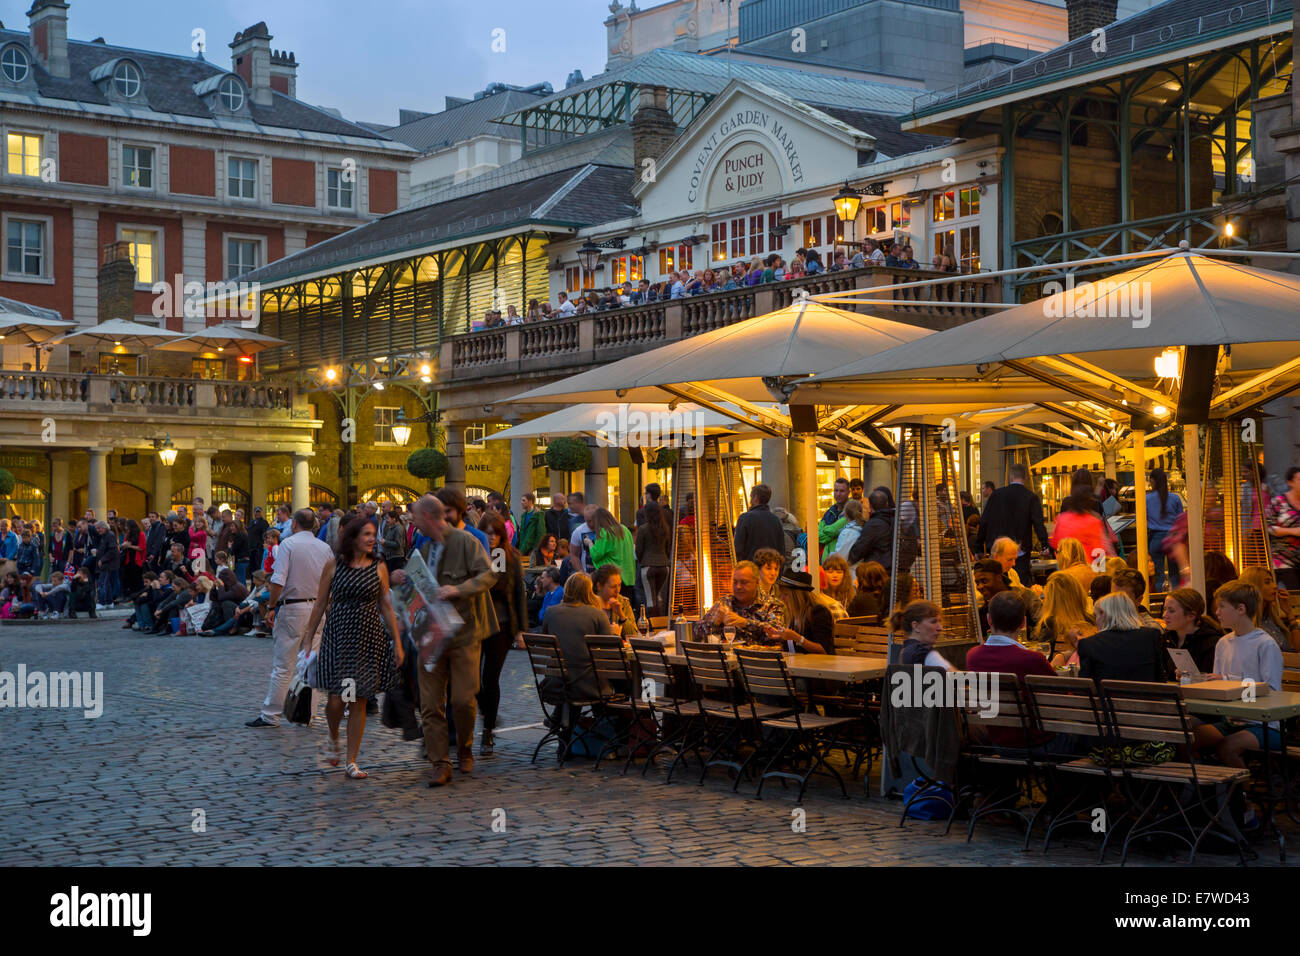 Evening at the restaurants and shops of Covent Garden ...